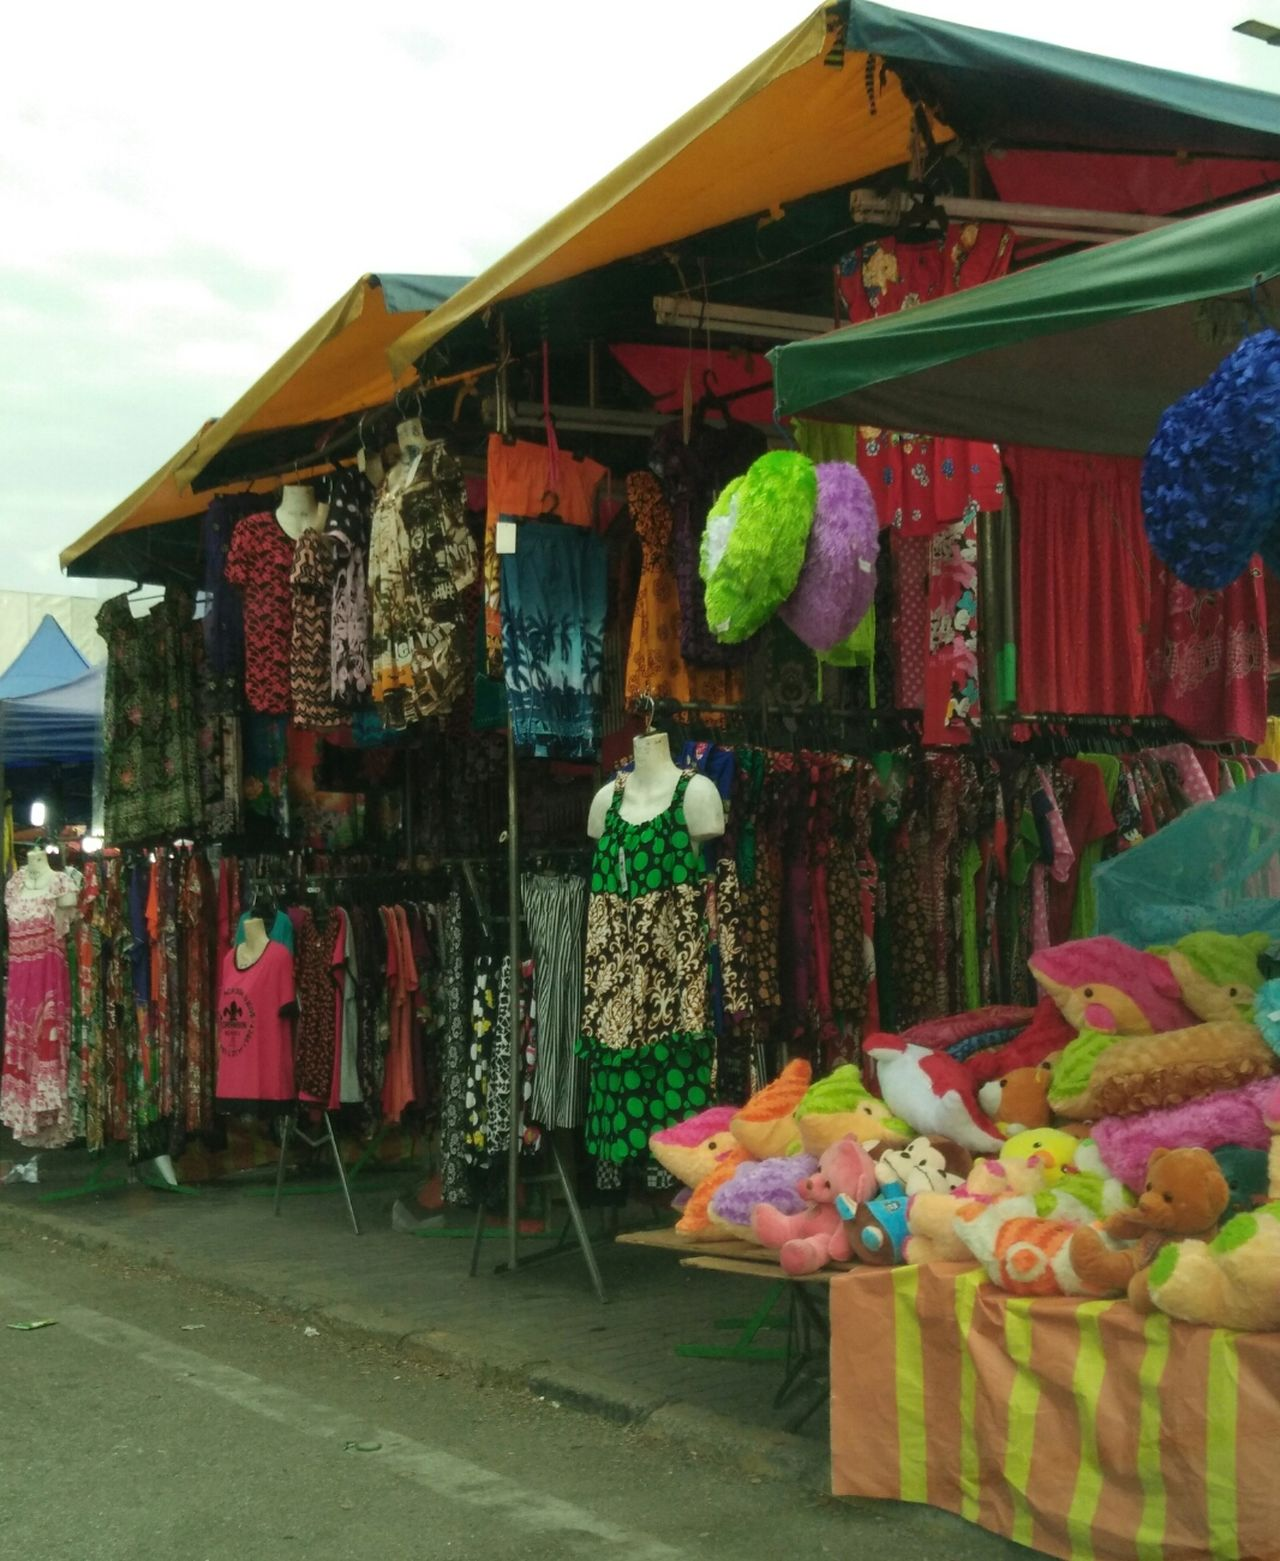 Multi Colored Variation Hanging Retail  Choice For Sale Outdoors Cloth Clothes Hanging Clothing Store Market Stall Colourful Awesome_view Roadscenes